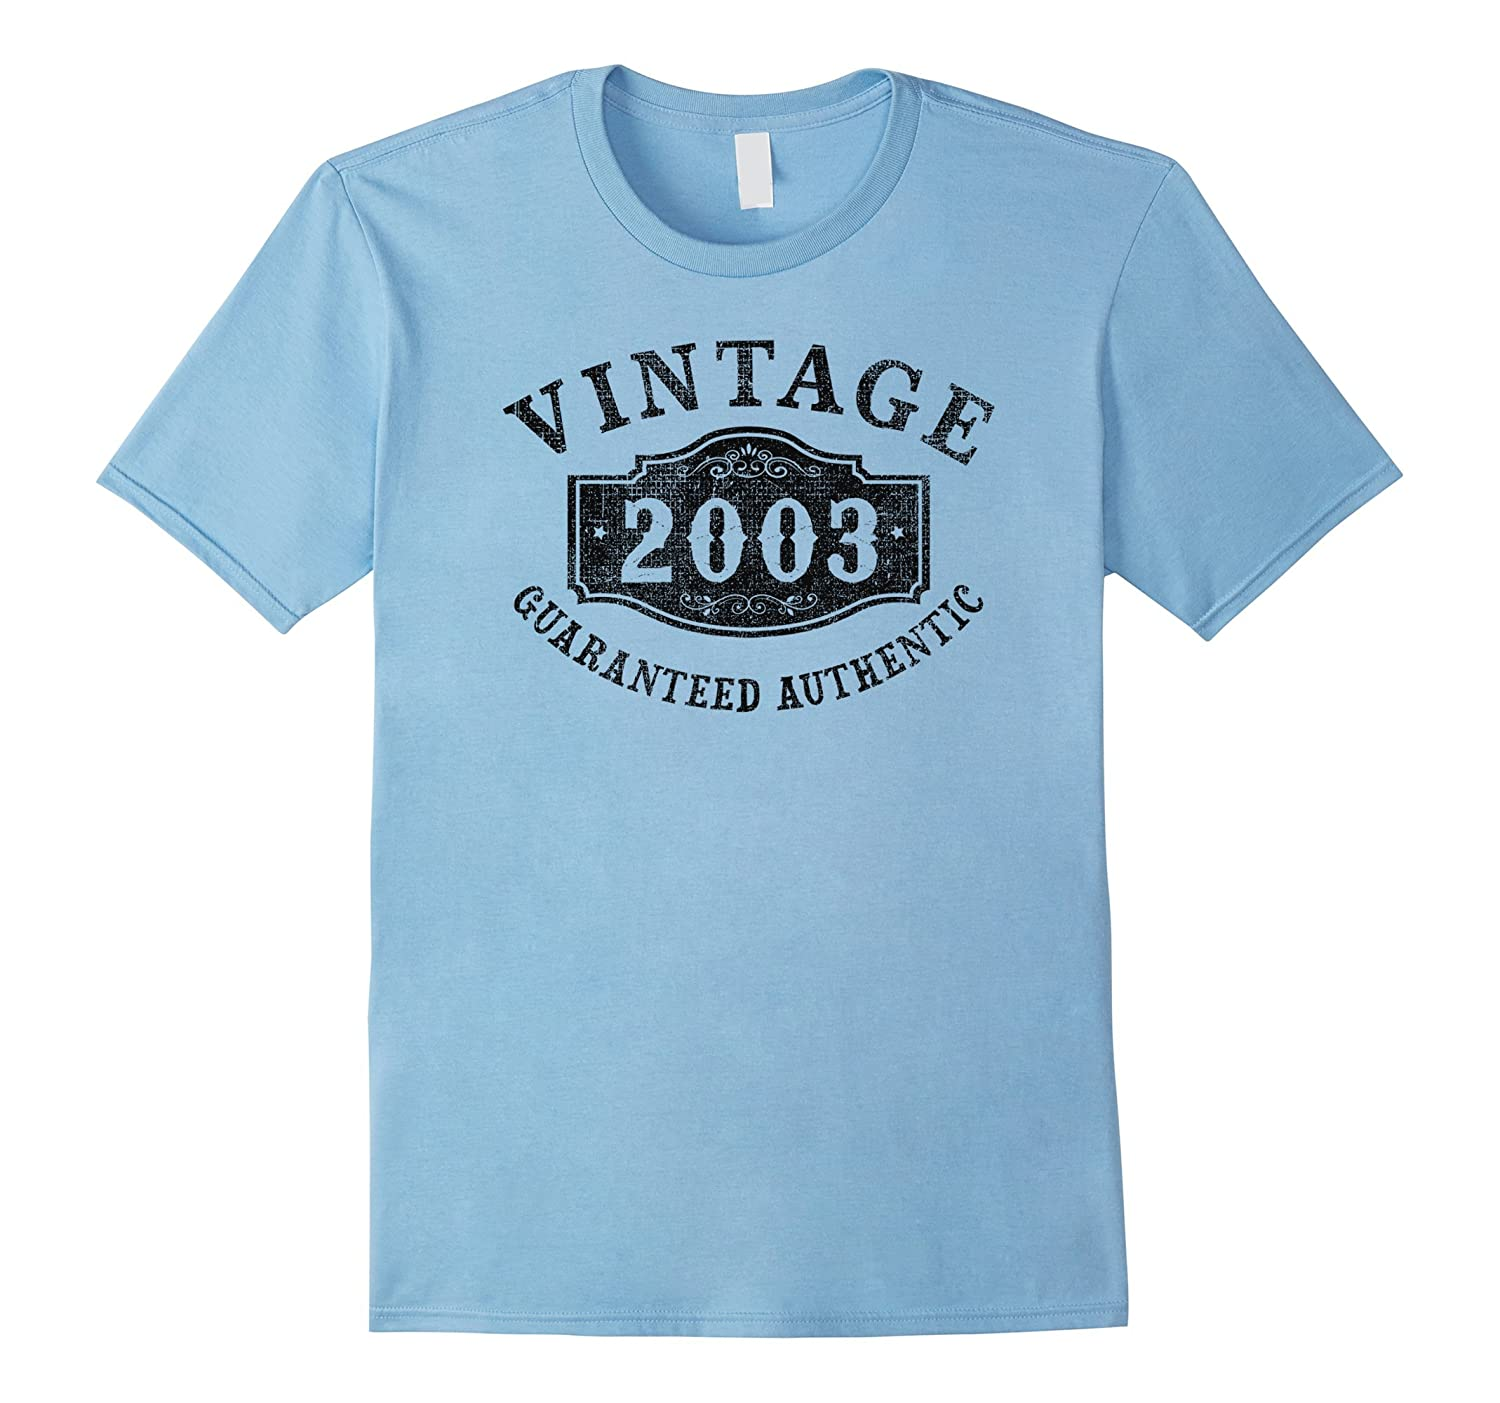 14 years old 2003 Authentic 14th B-day Birthday Gift Shirt-PL